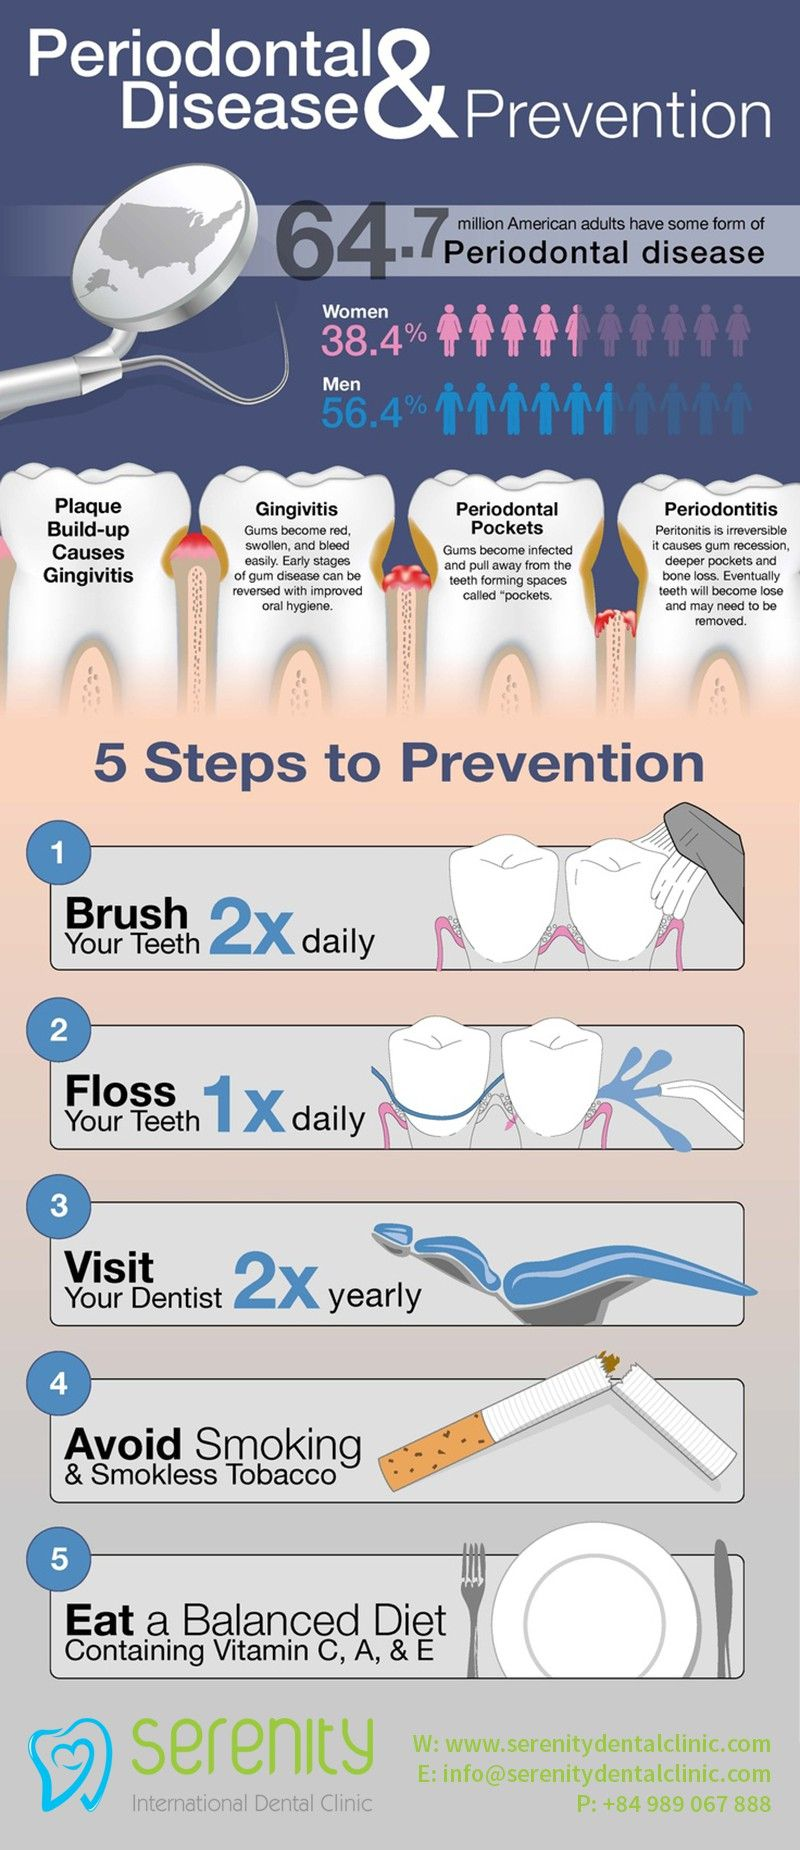 5 simple steps to prevent periodontal disease infographic